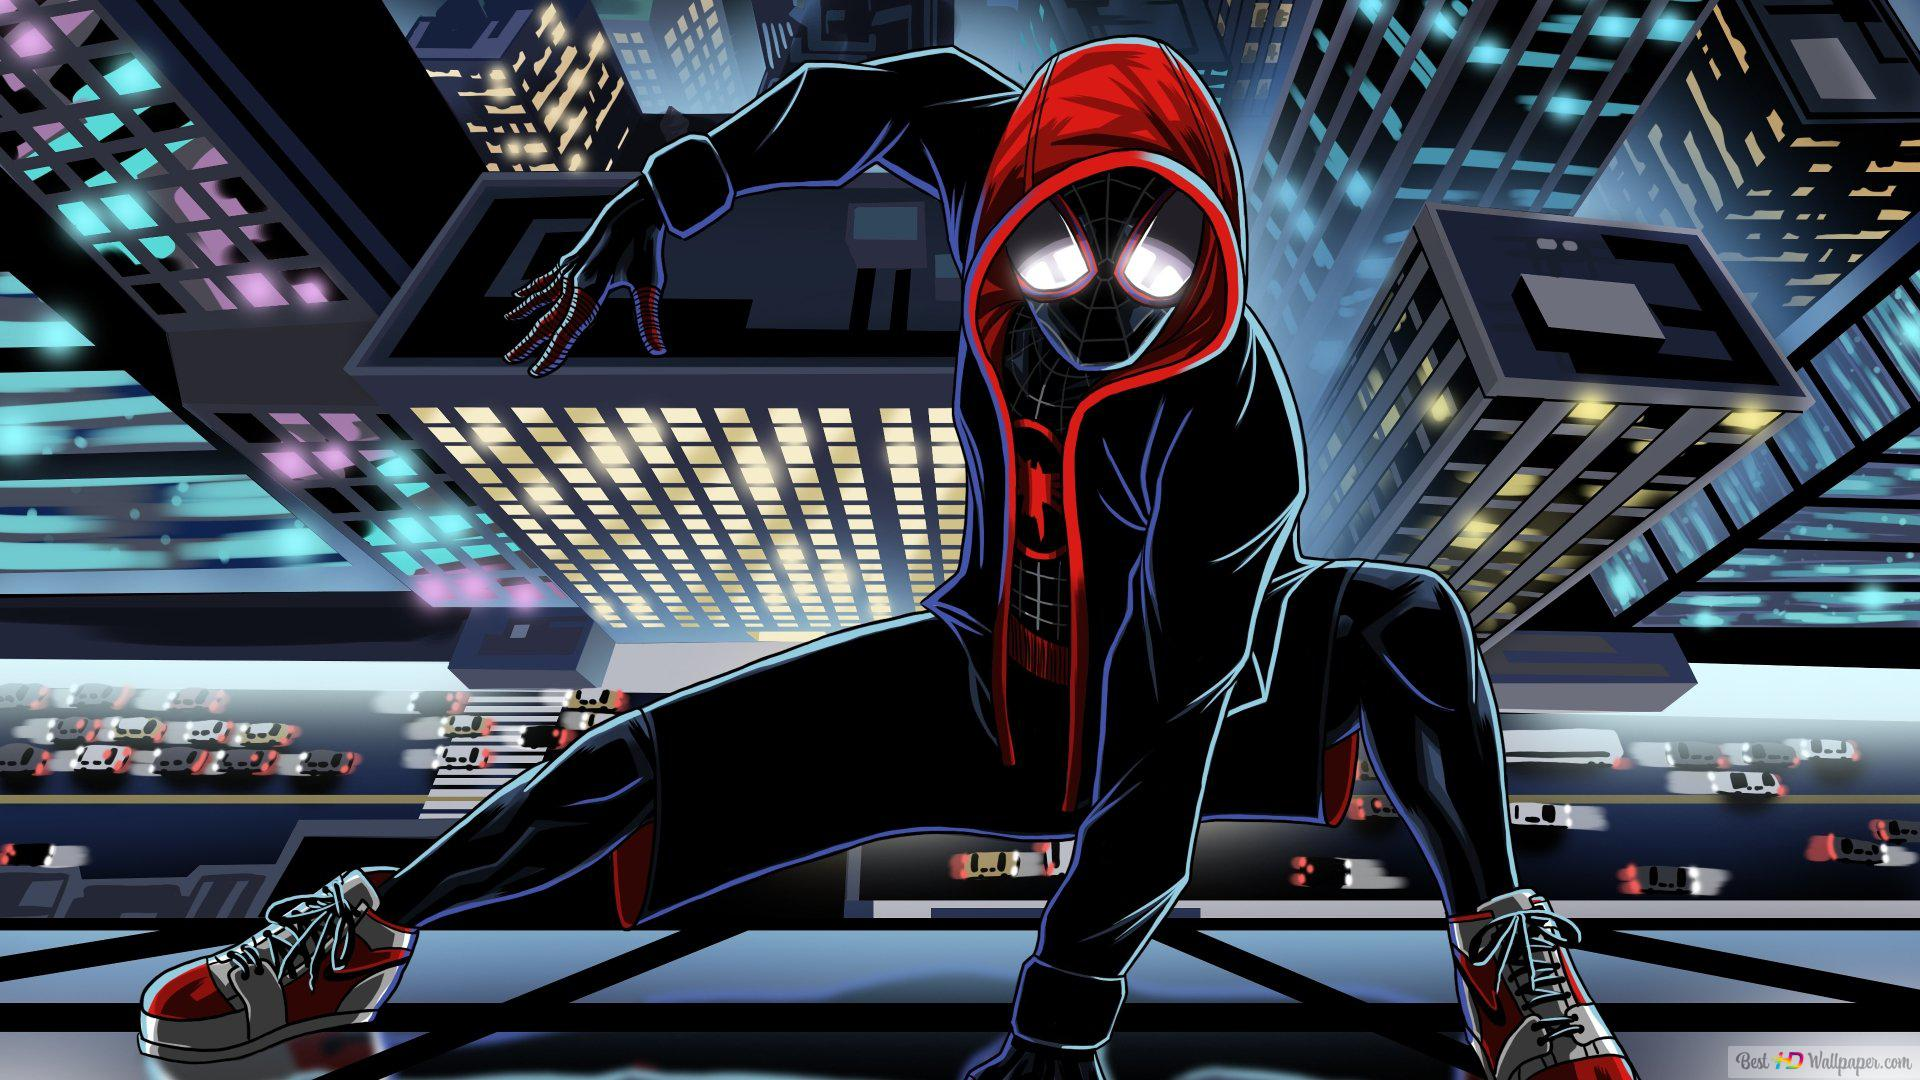 Spider Man Into The Spider Verse Animation Hd Wallpaper Download